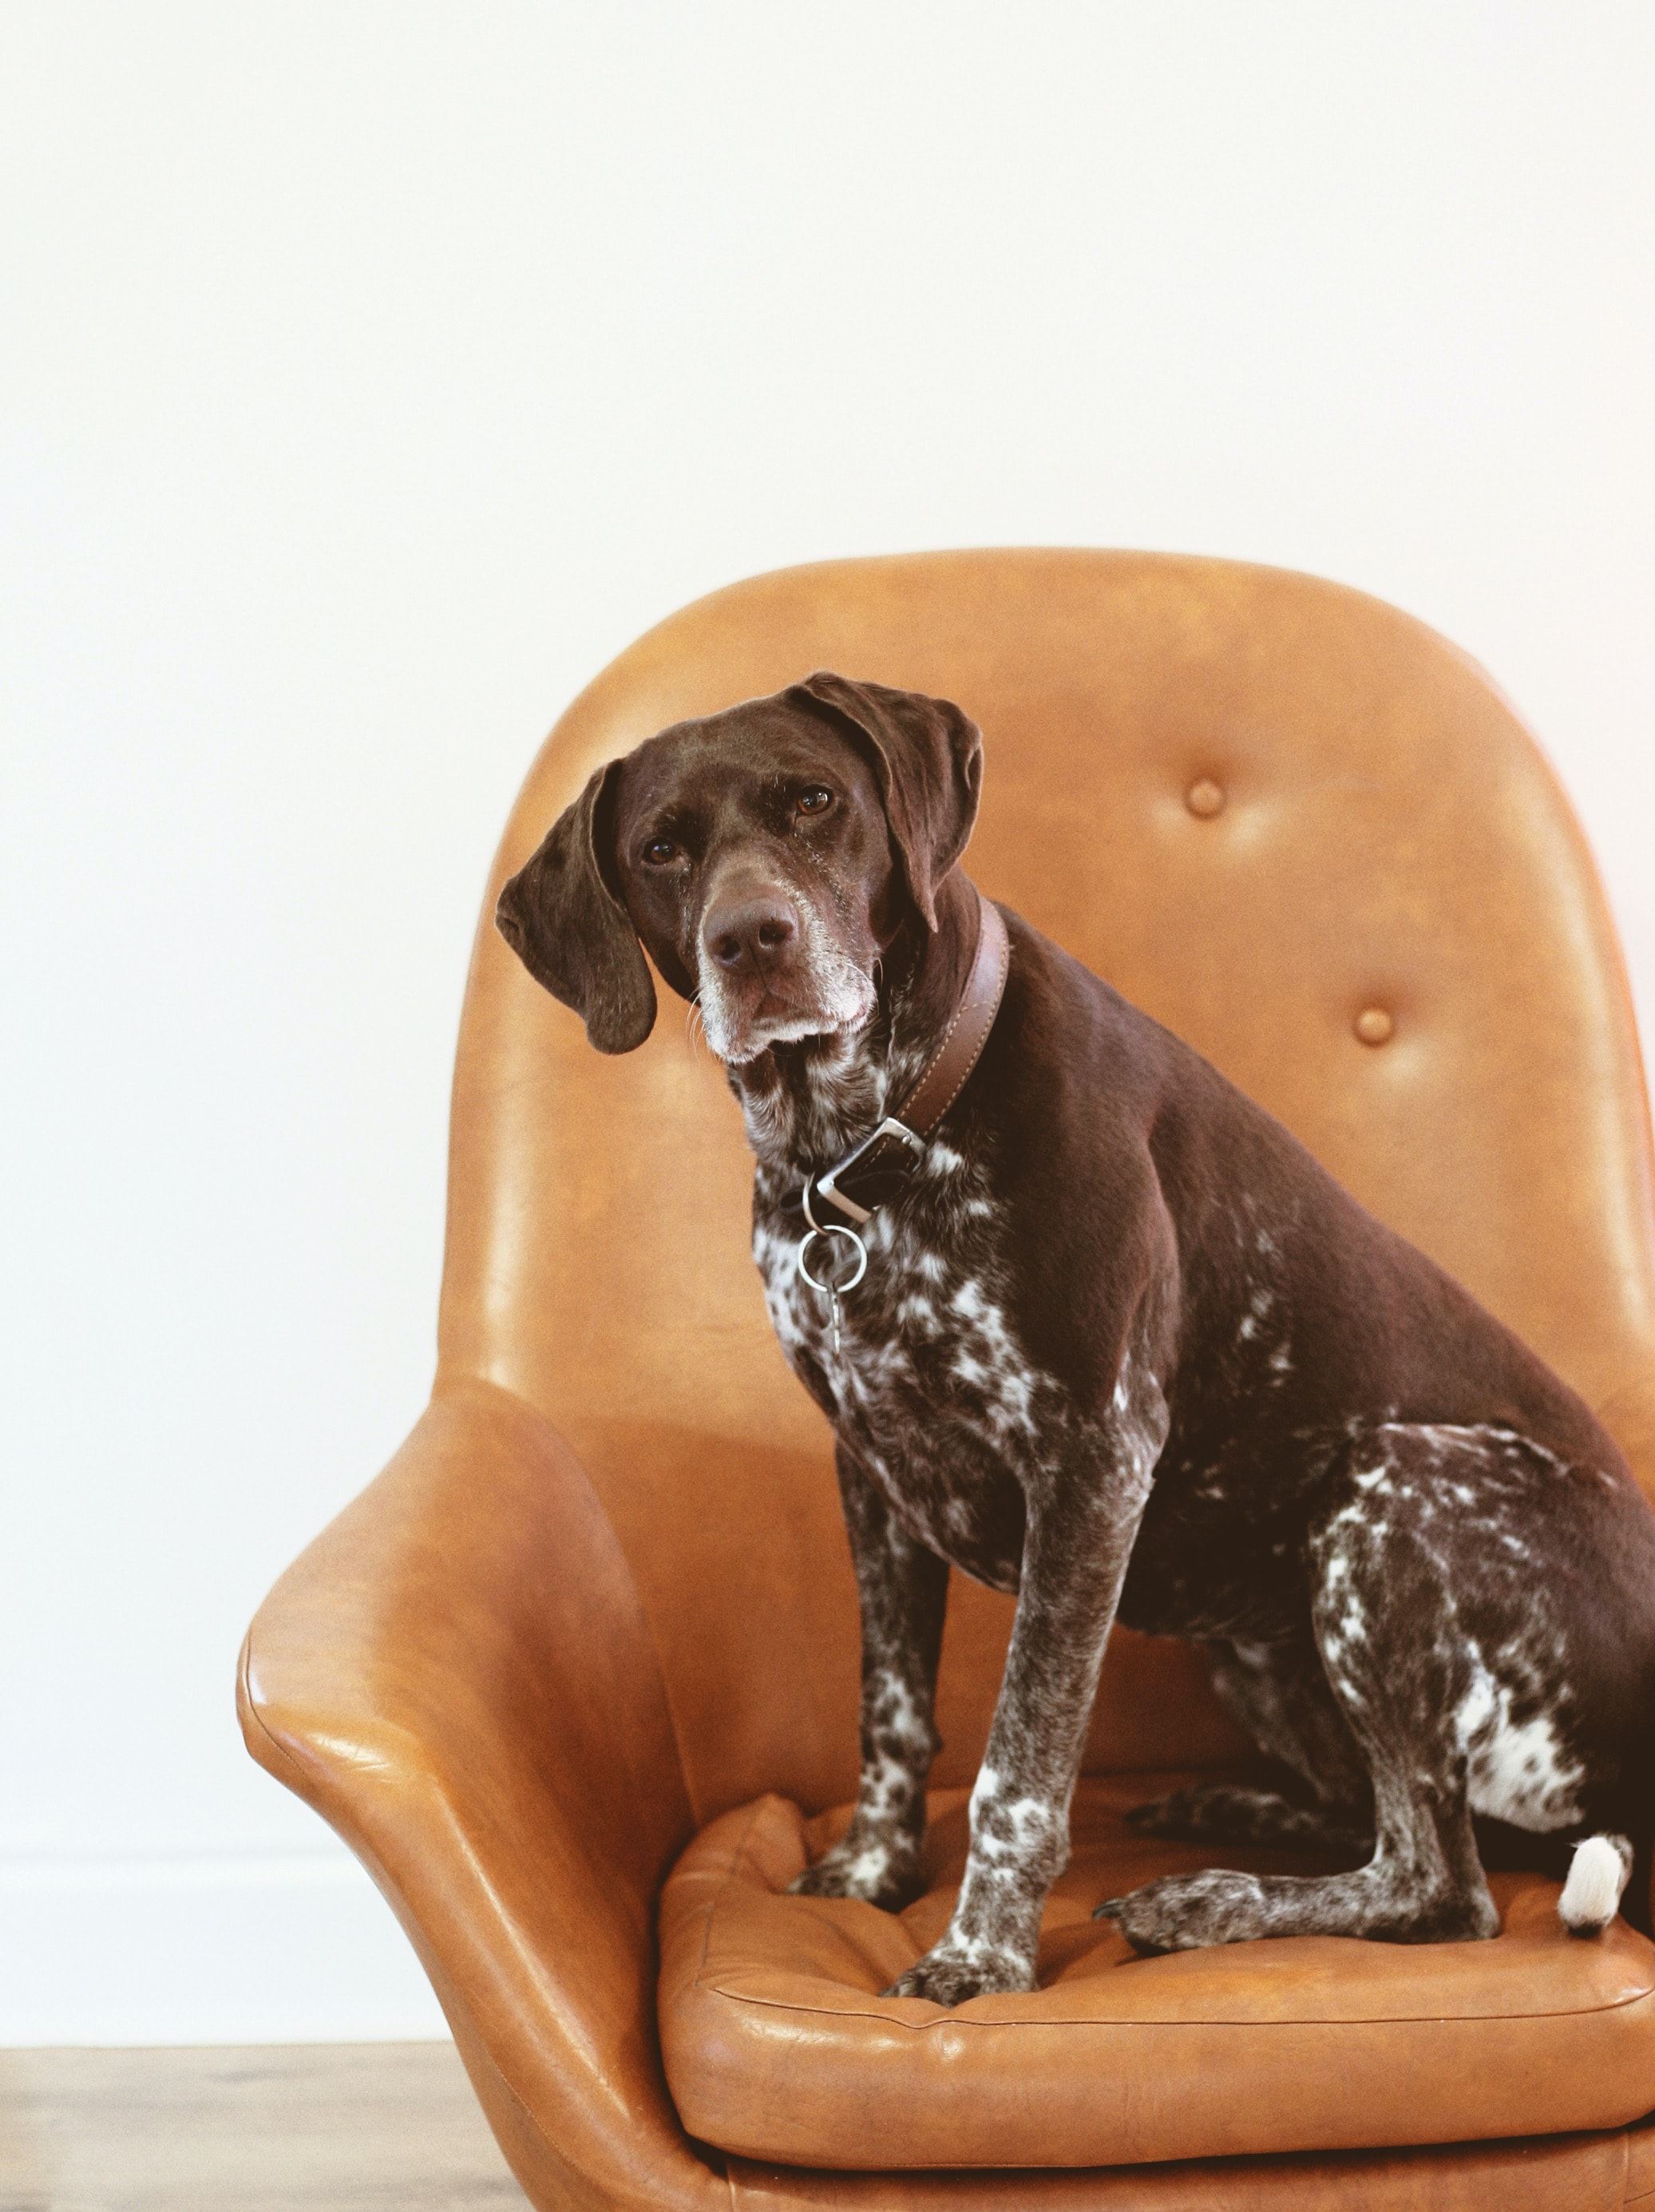 short-coated black and white dog on orange leather armchair